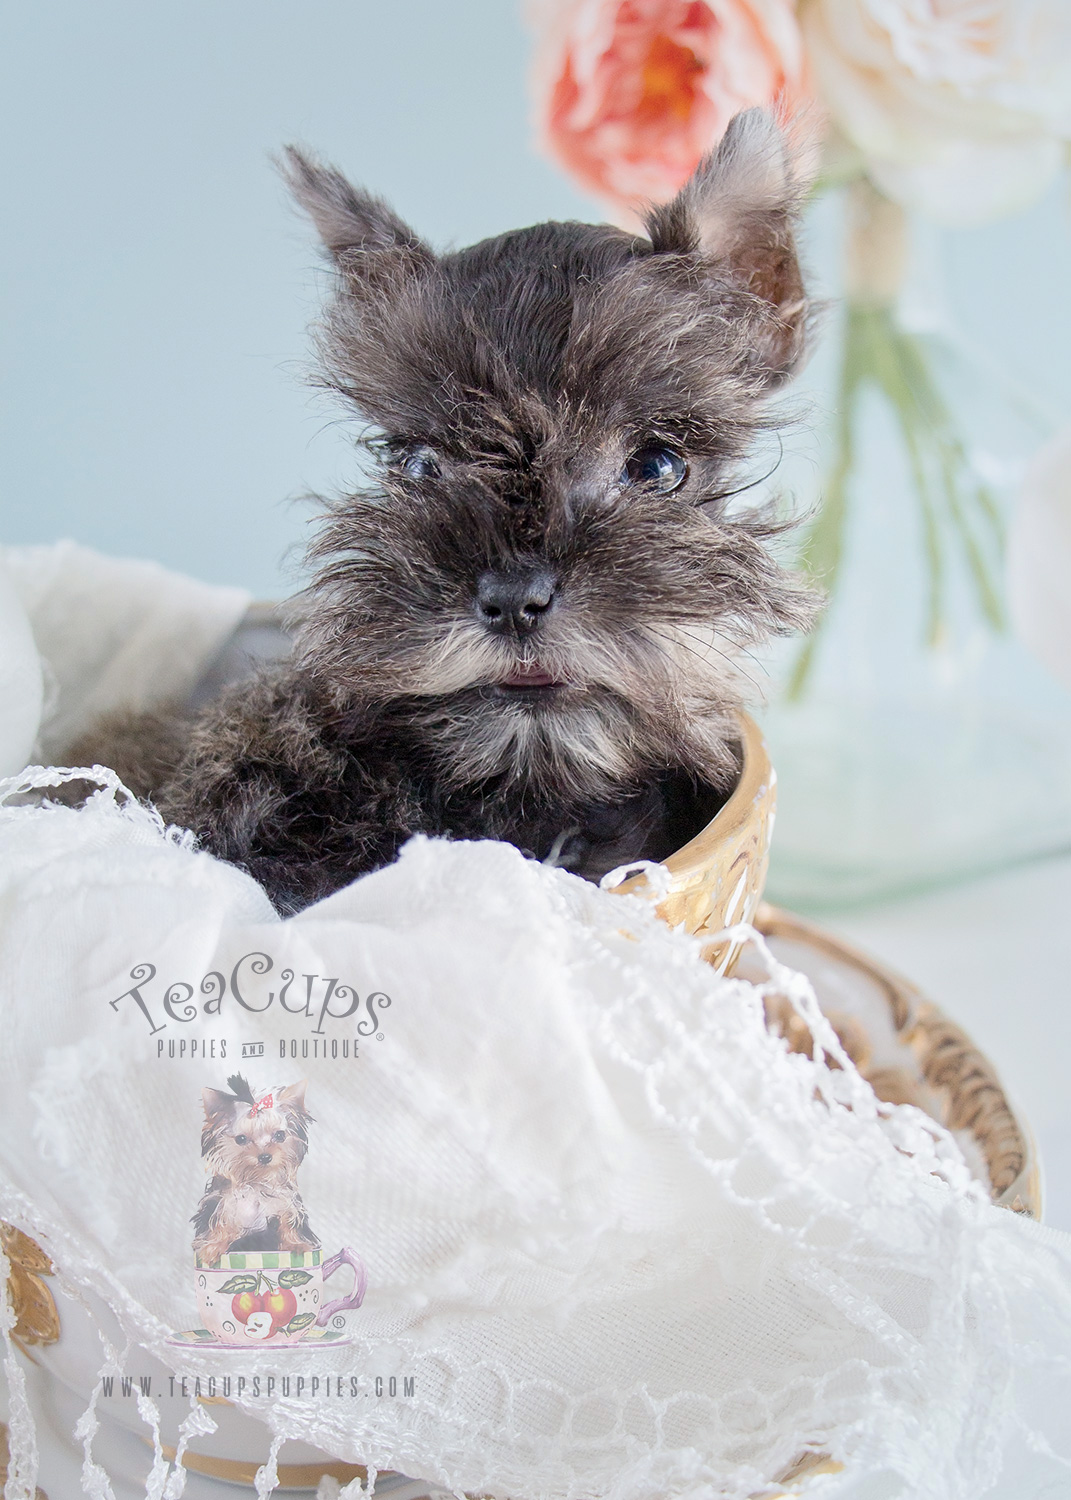 Schnauzer Puppies For Sale at Teacups Puppies & Boutique